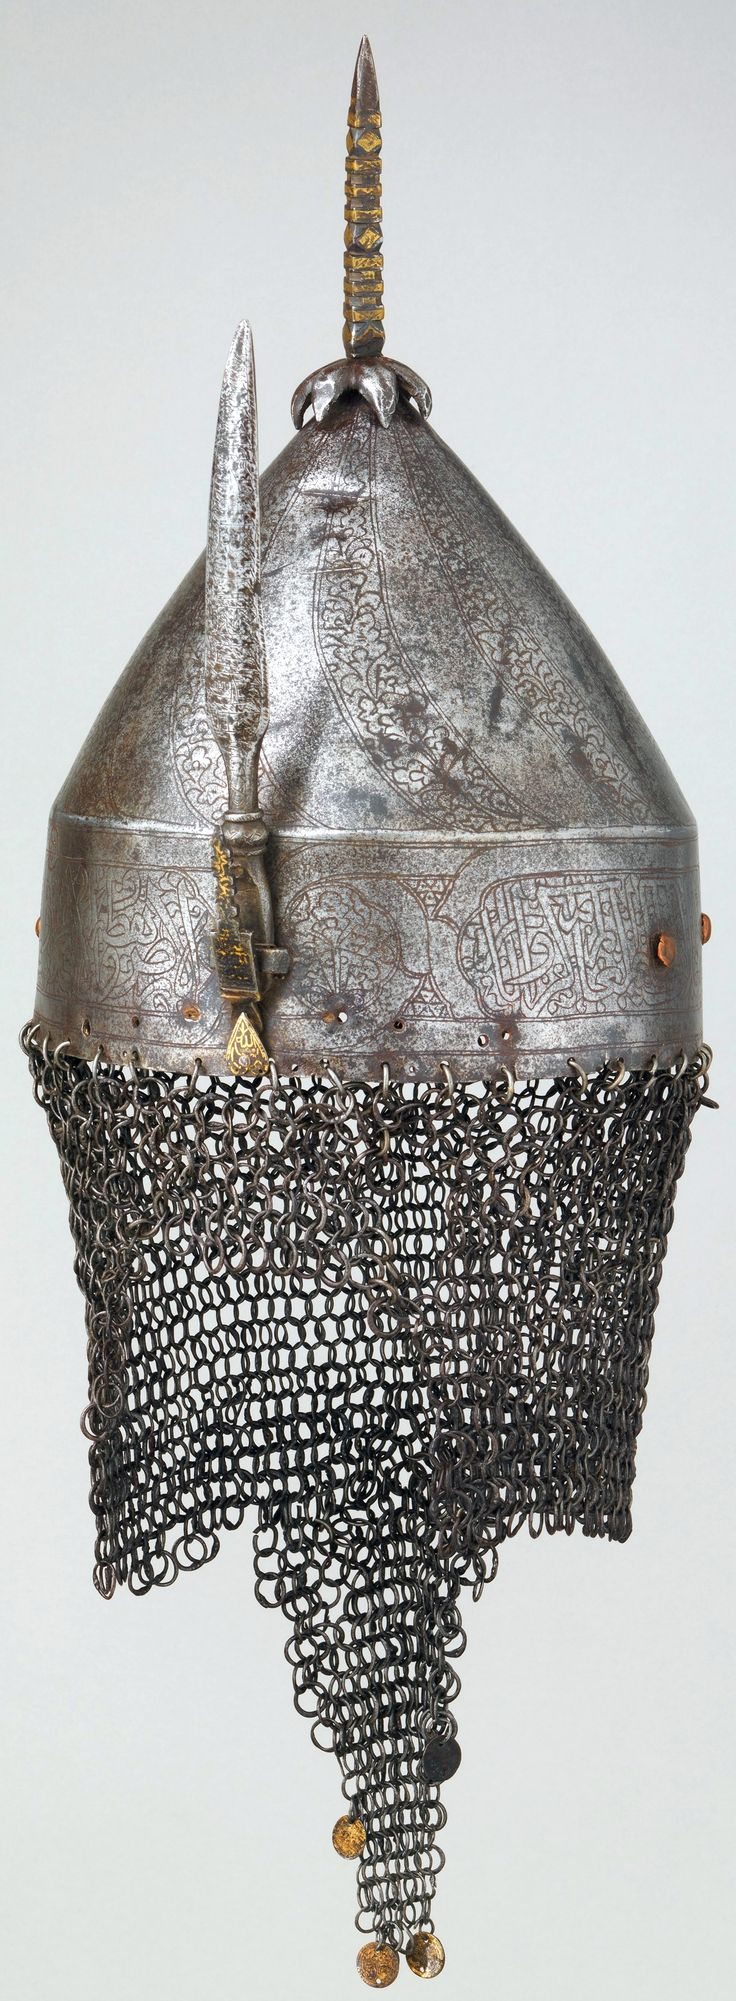 Ottoman helmet, 16th century, steel, gold, copper, brass, H. including mail 24 1/2 in. (62.2 cm); H. 8 in. (20.3 cm); W. 8 1/2 in. (21.6 cm); D. 8 3/4 in. (22.2 cm); Wt. excluding mail 3 lb. 3.8 oz. (1468.5 g), Bequest of George C. Stone, 1935, Met Museum.